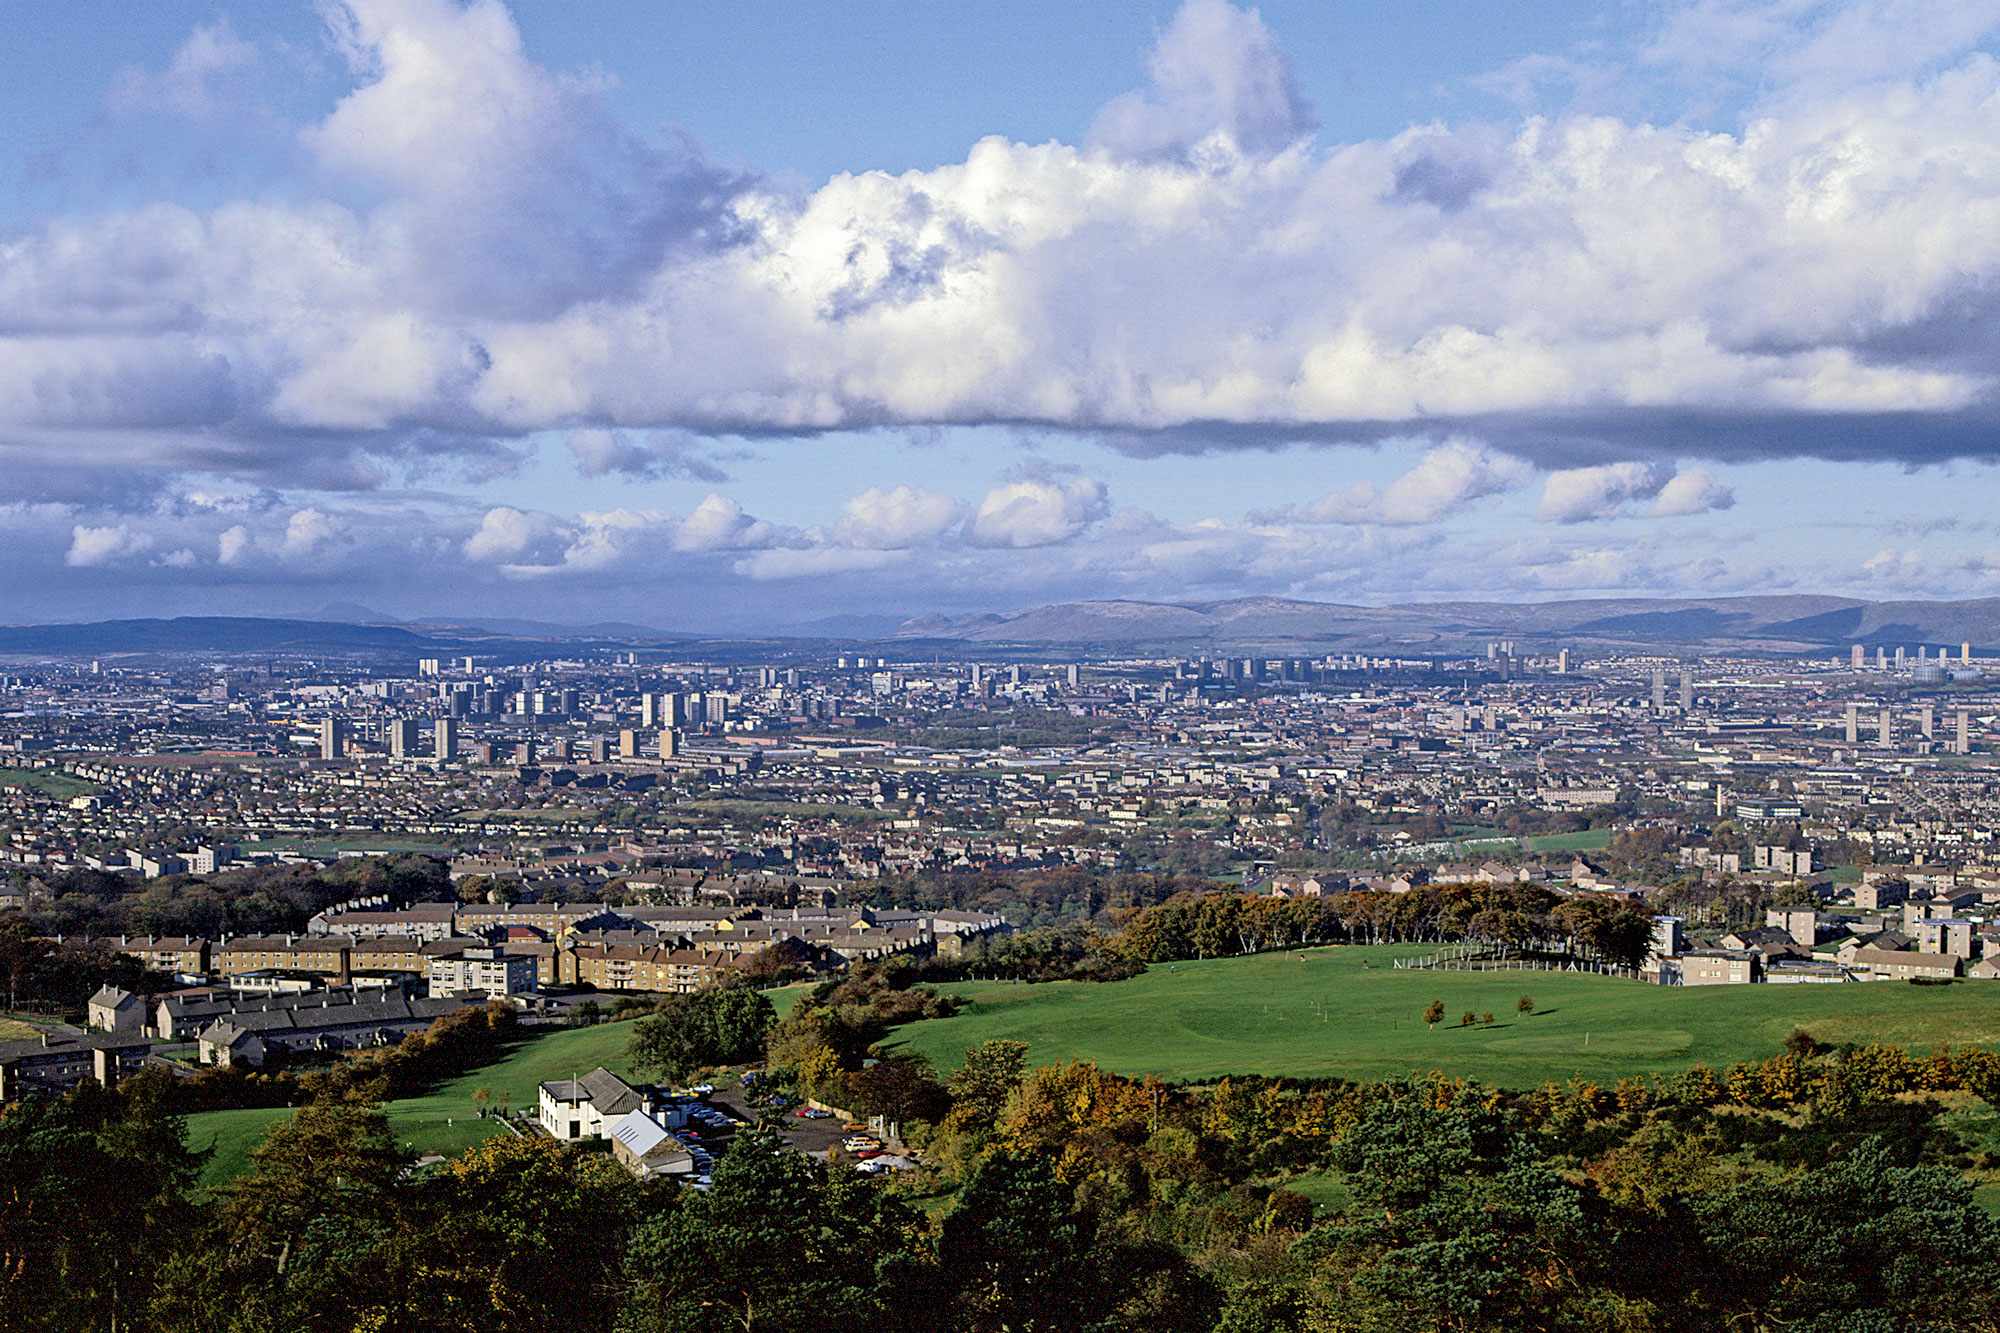 Cityscape of the Glasgow from the heights of Cathkin Braes to the South.